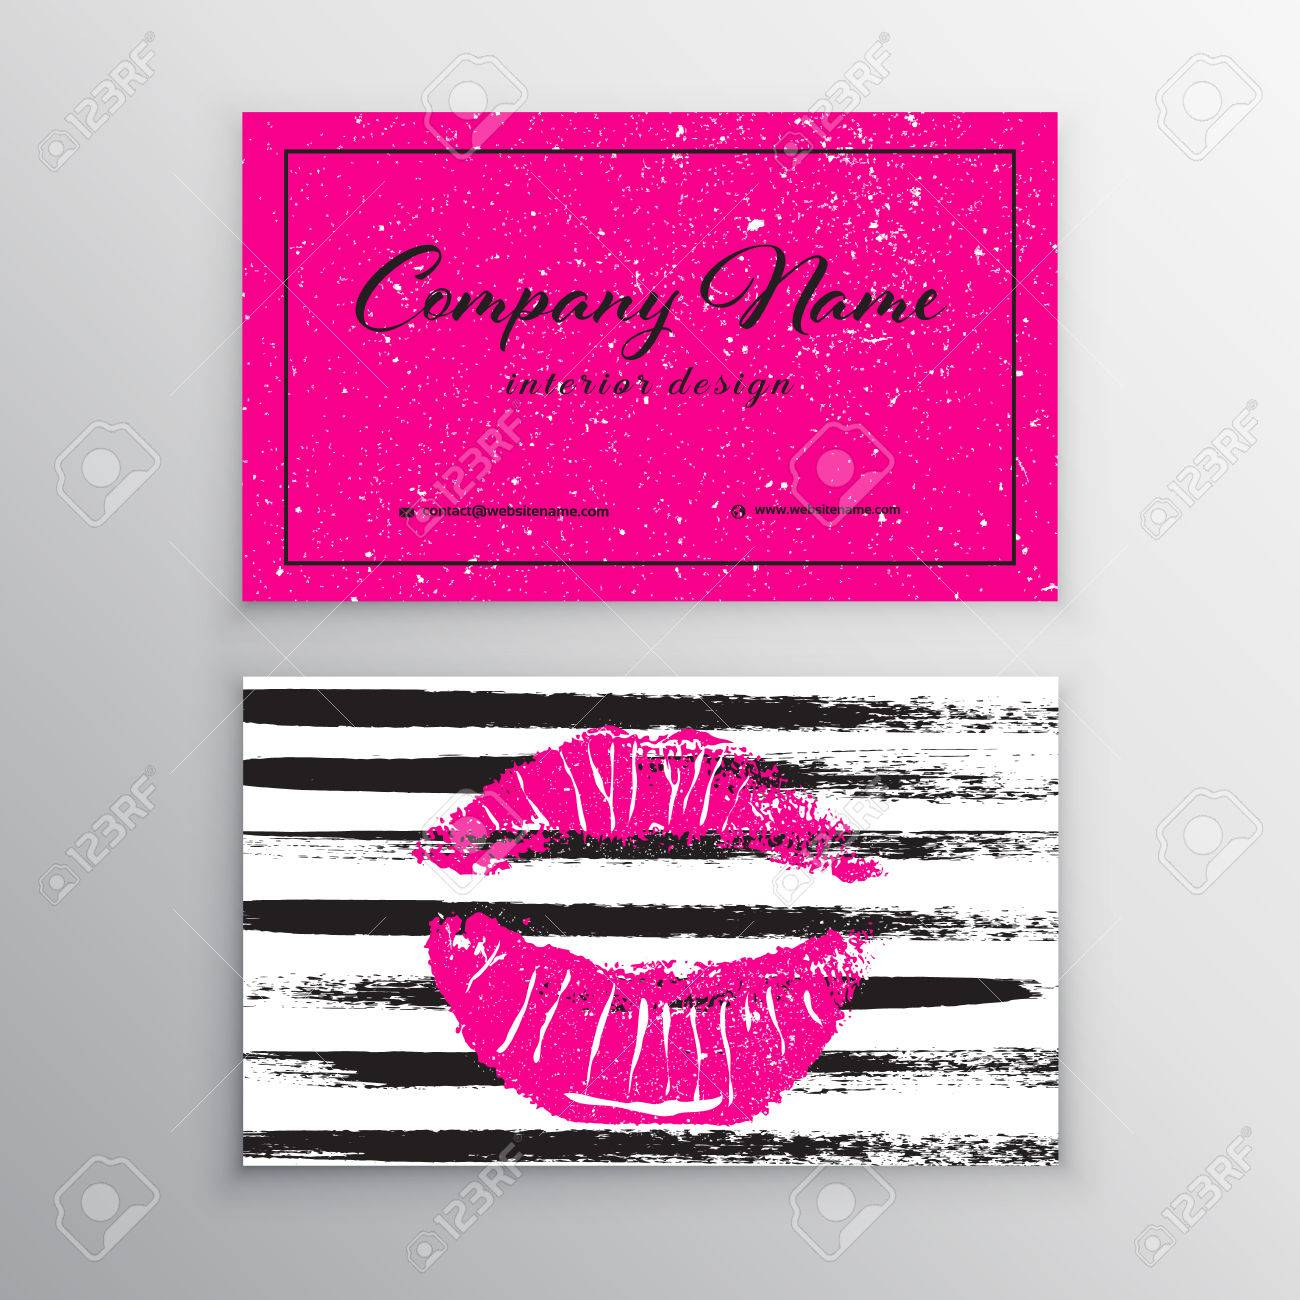 Makeup artist business card business cards template with pink makeup artist business card business cards template with pink lips print design templates for cheaphphosting Image collections